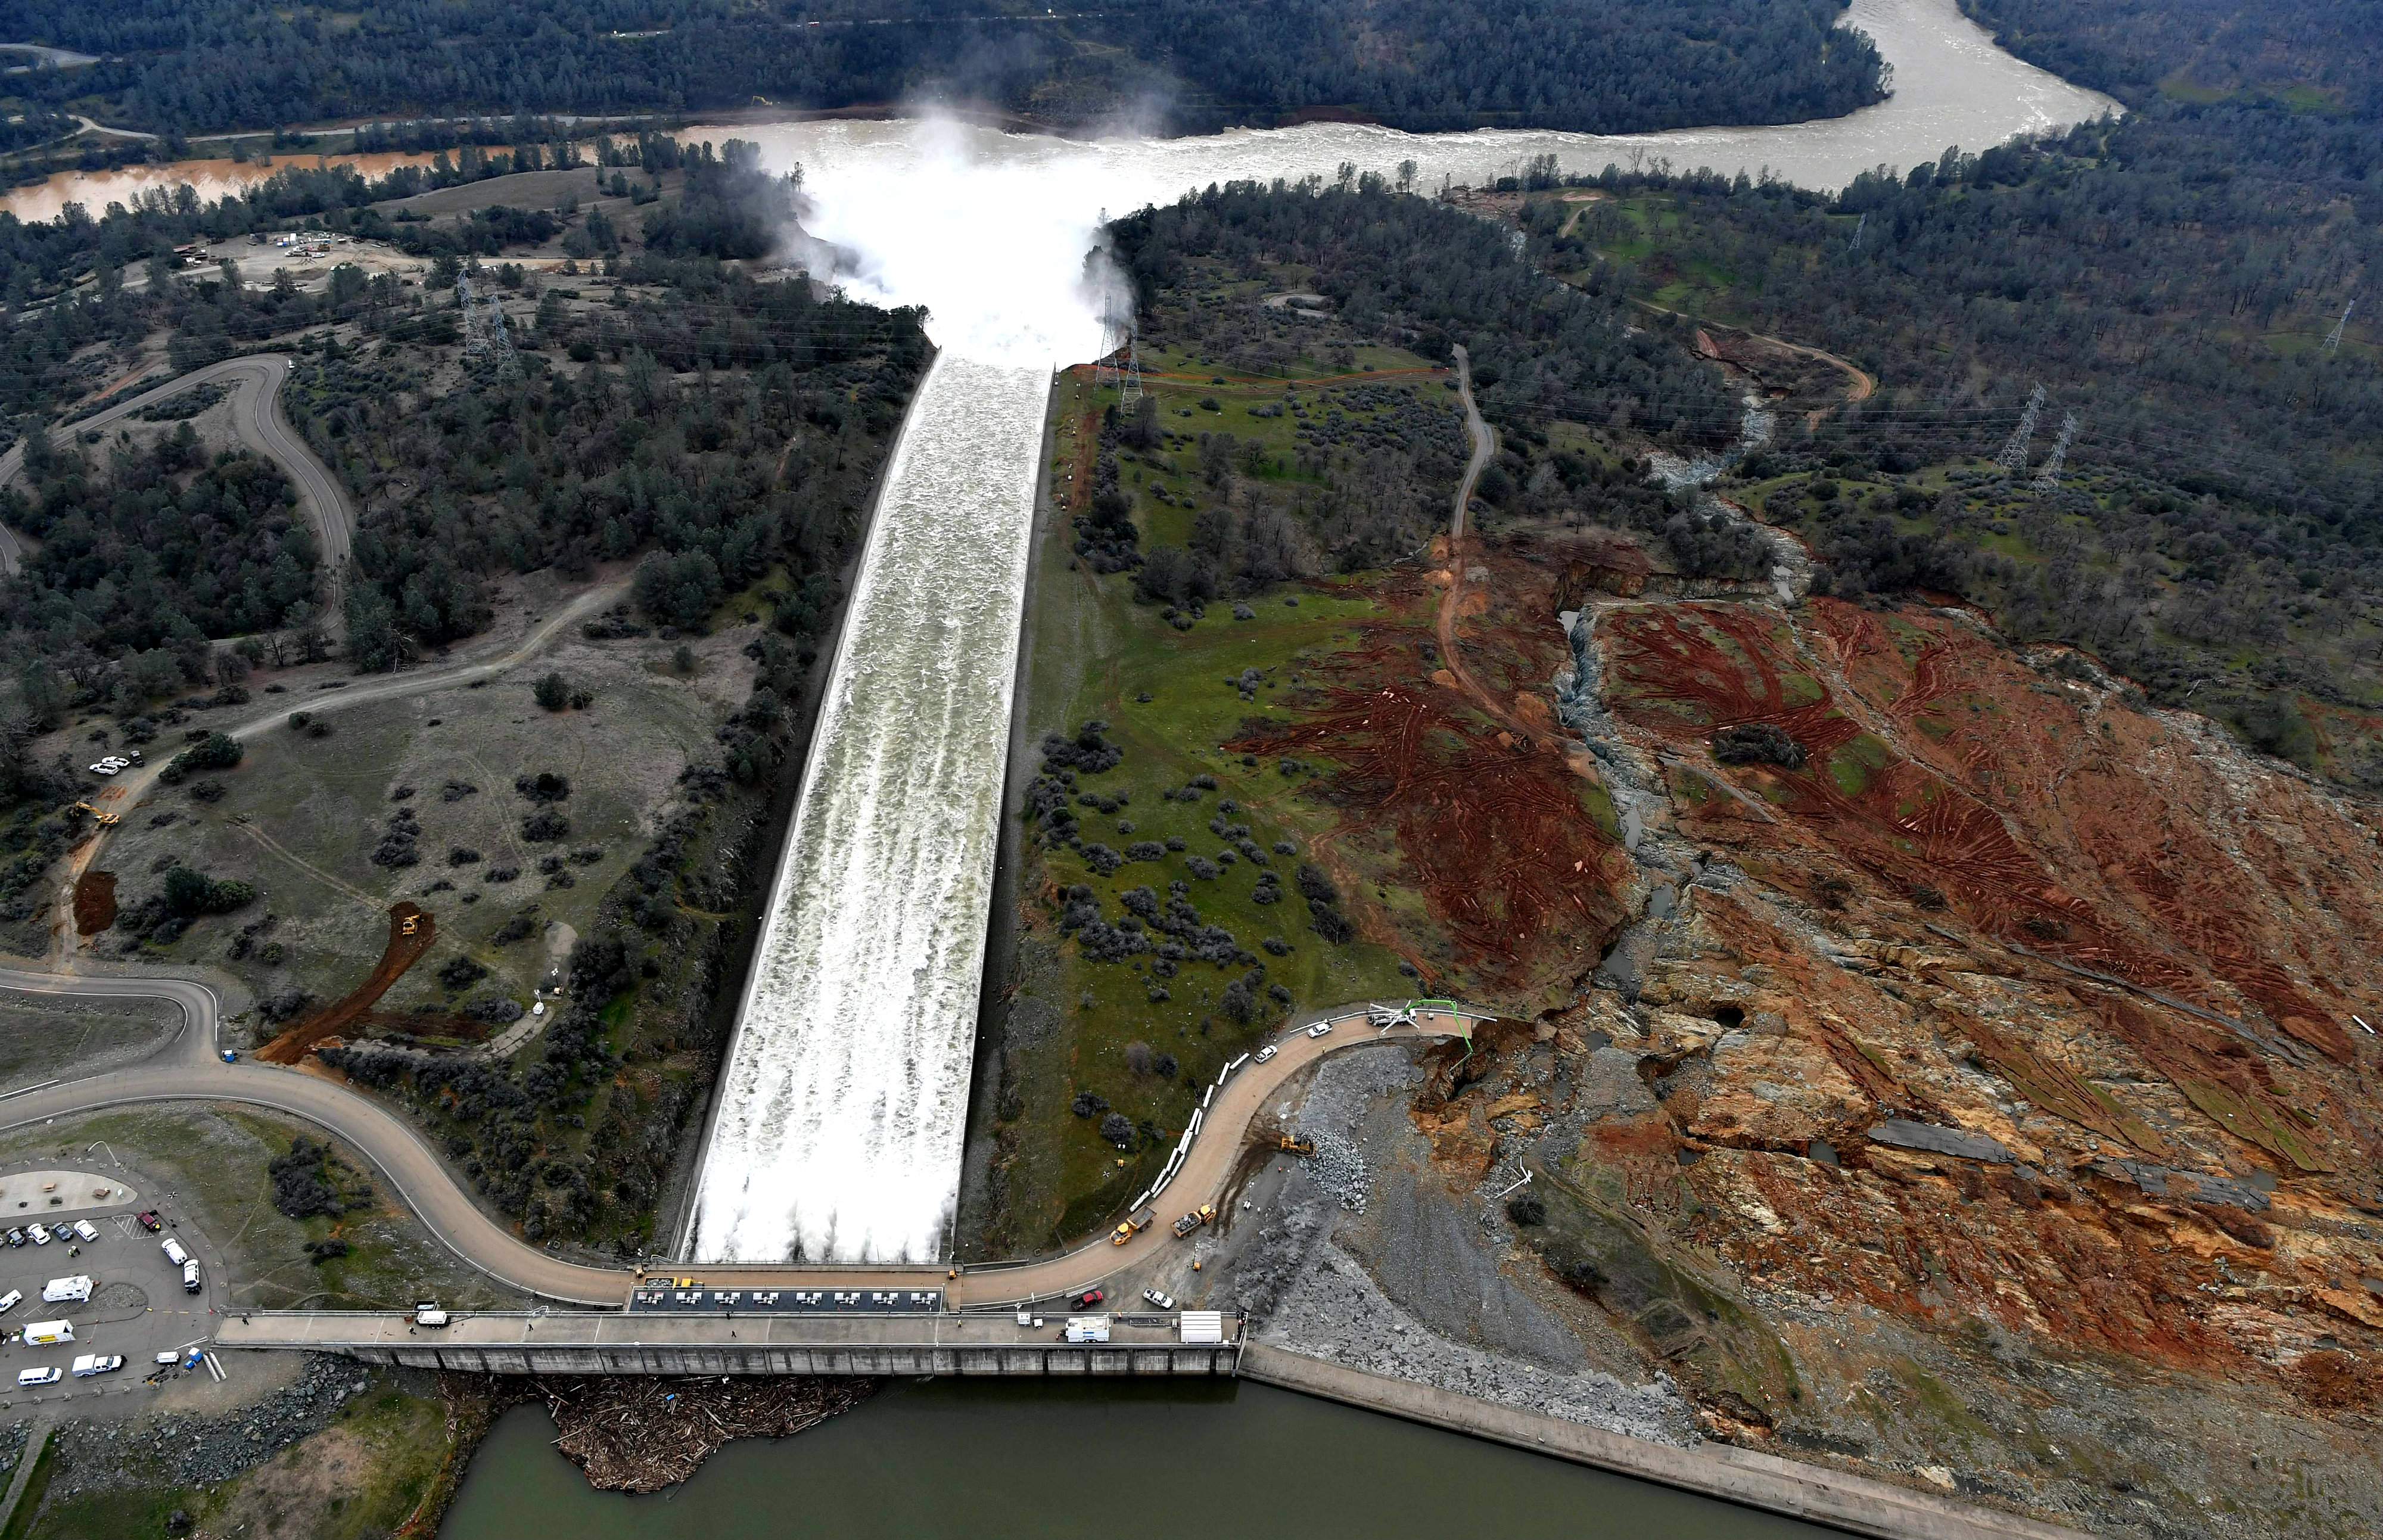 Oroville Crisis